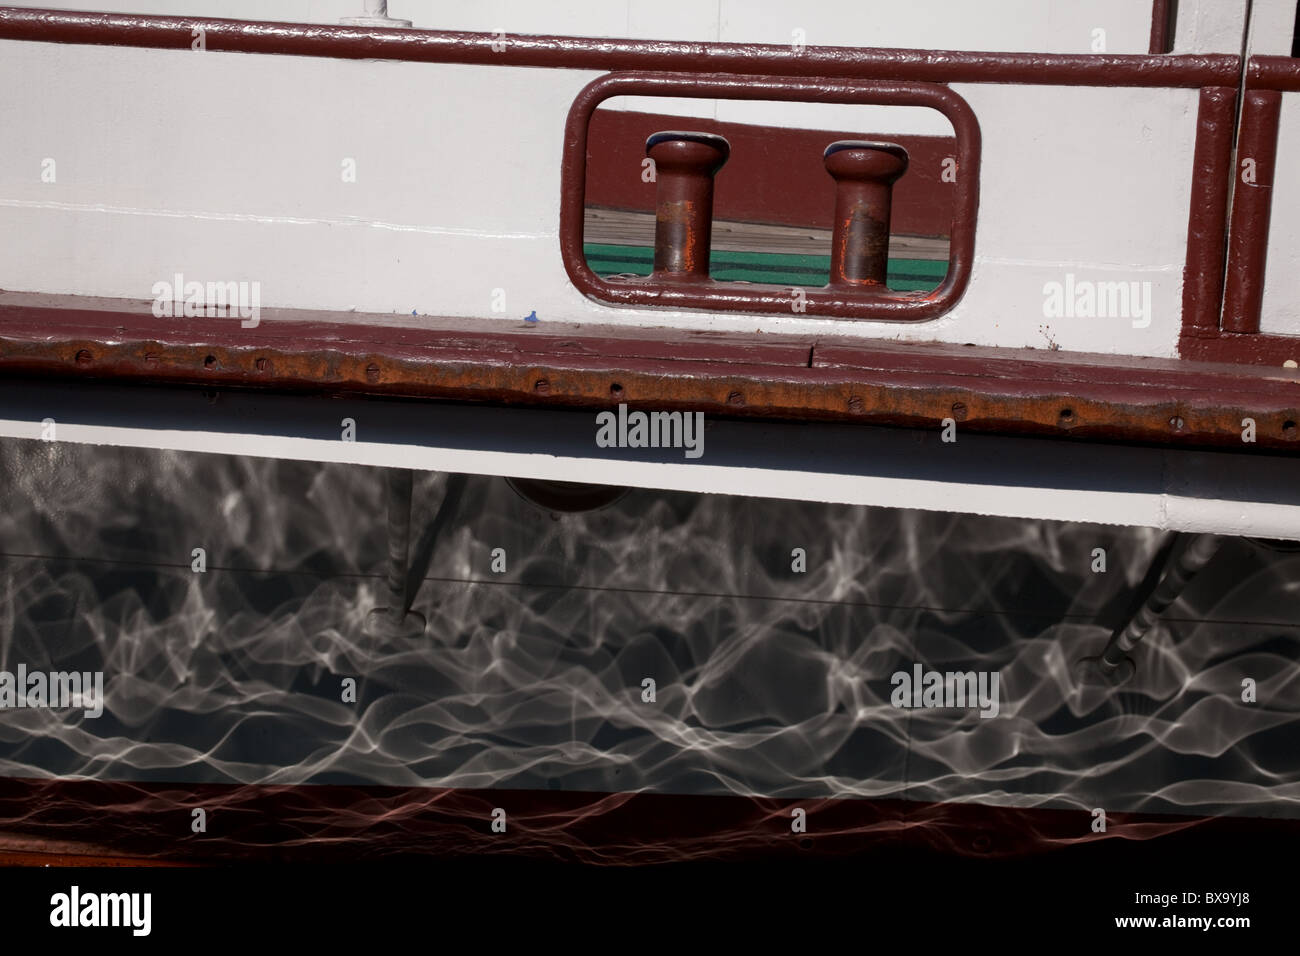 water reflections on the side of a tourist boat on Lake Garda Italy - Stock Image